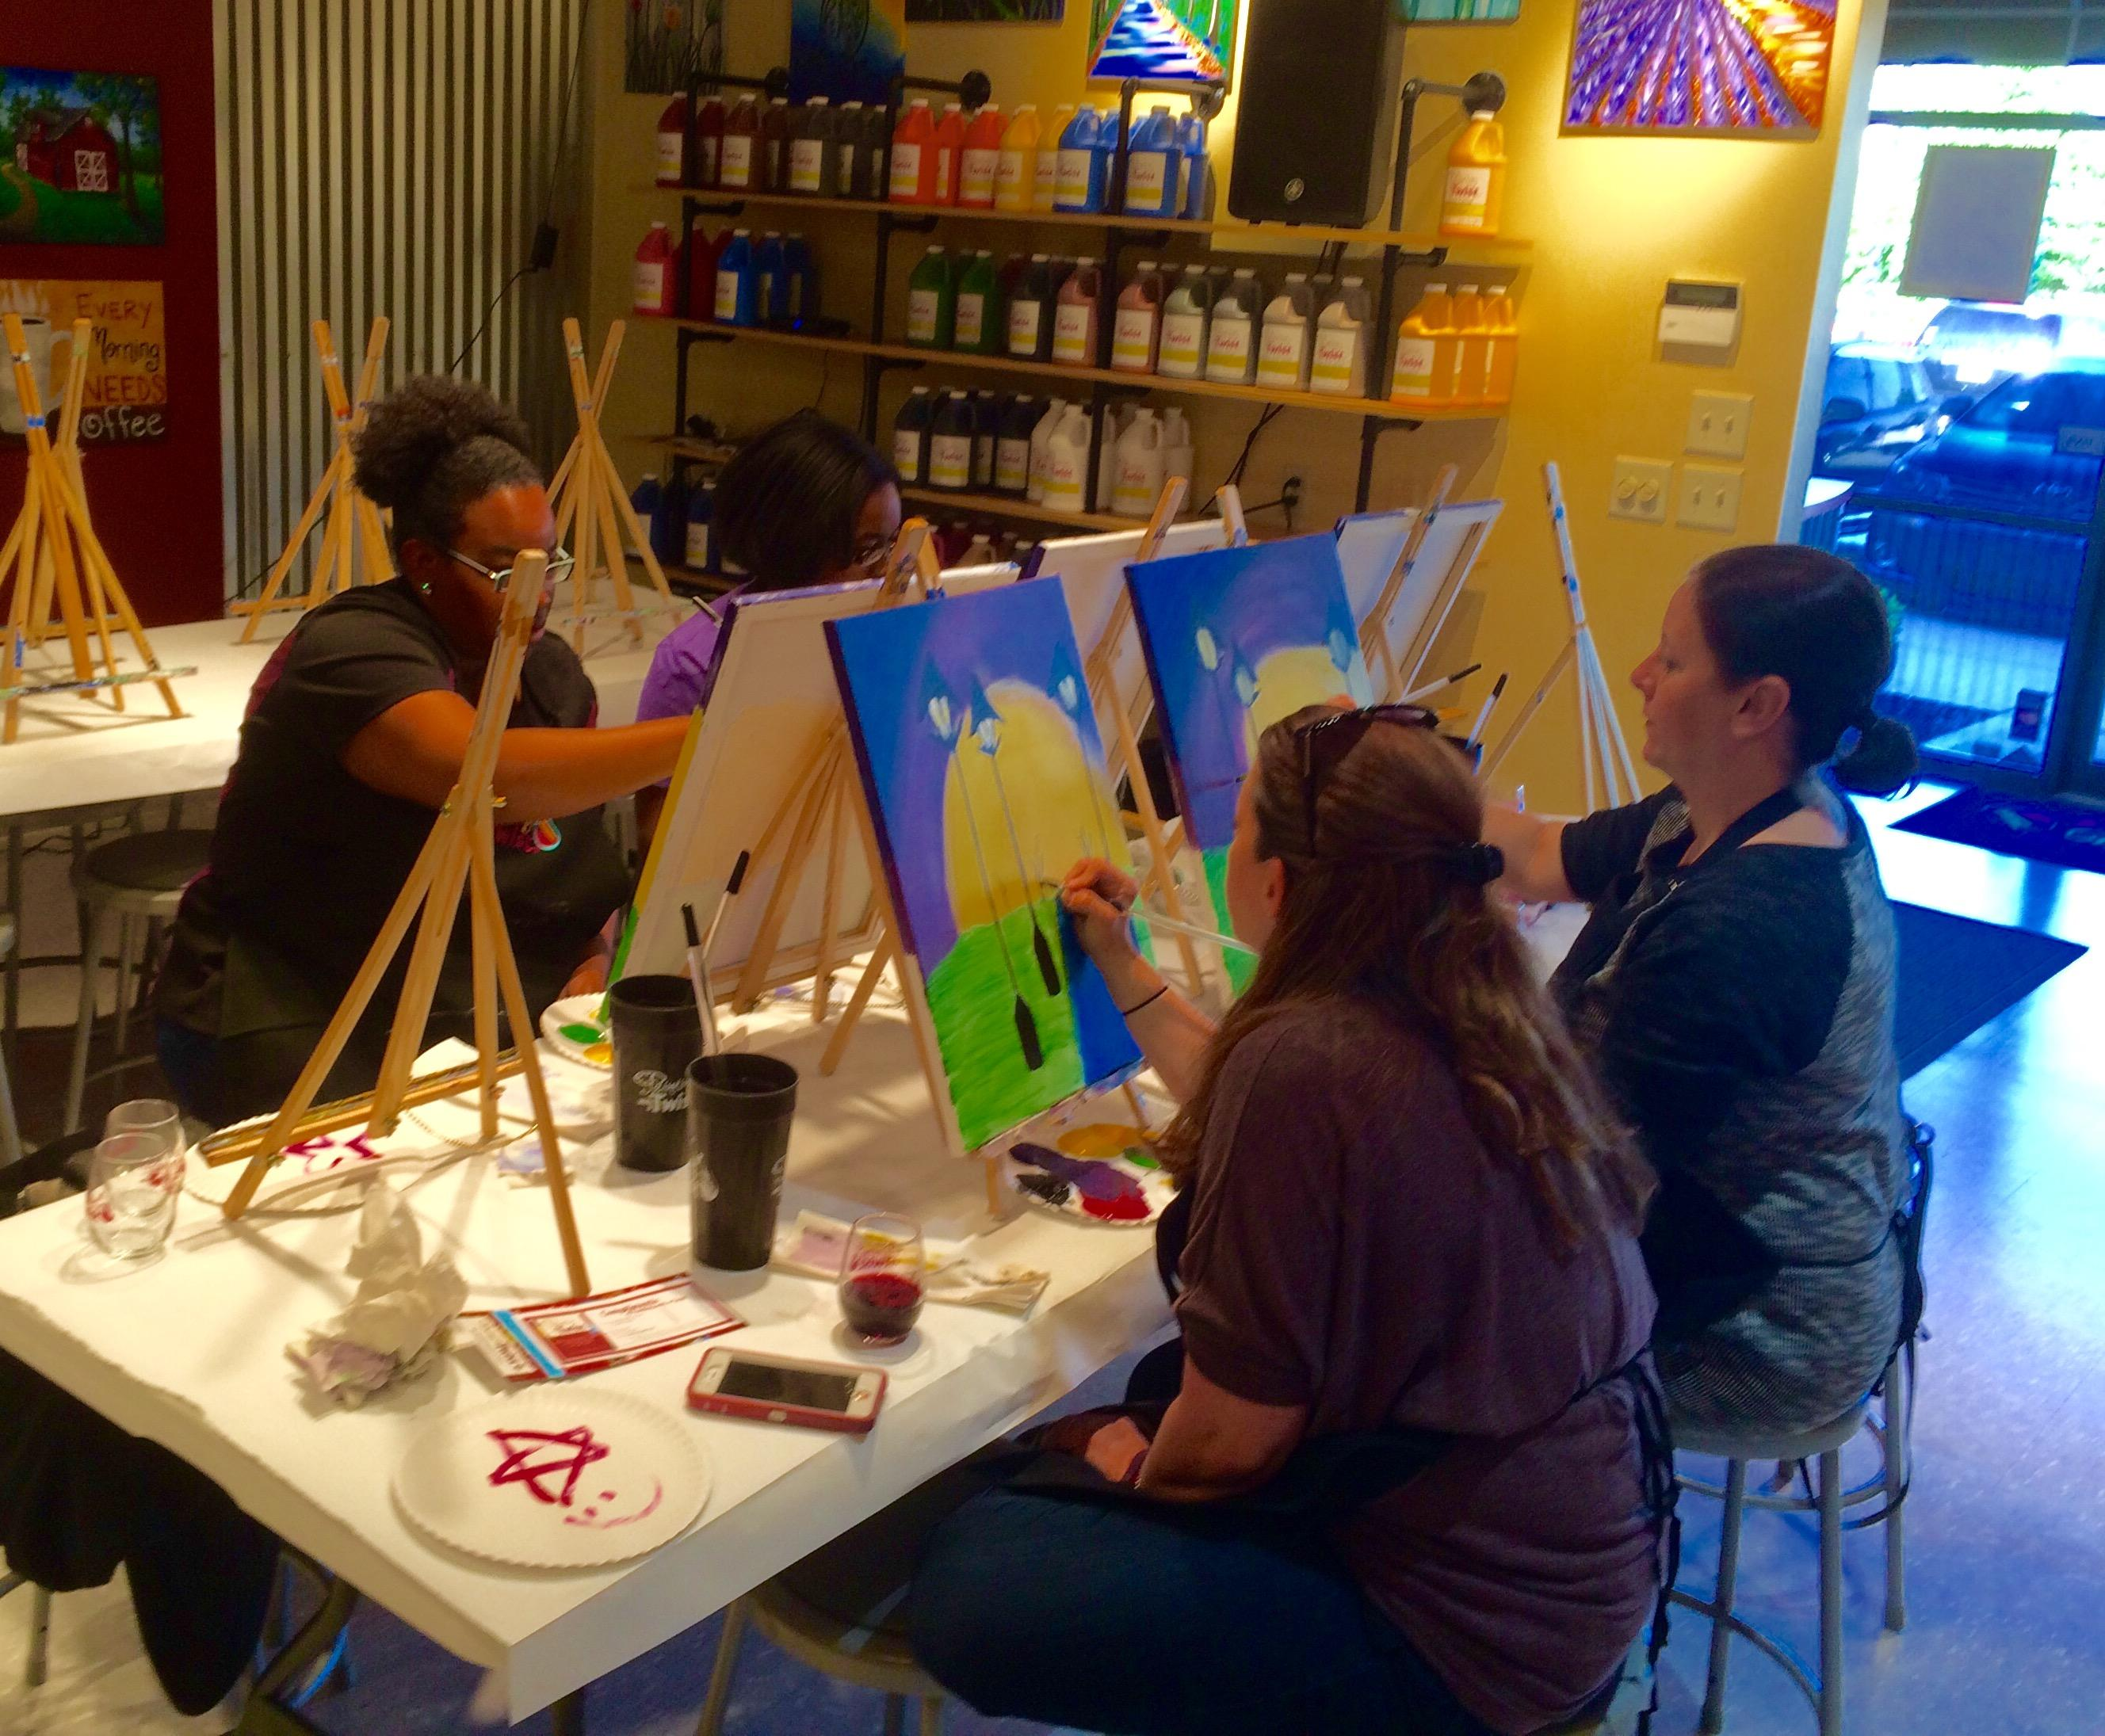 Painting with a twist in fishers in 46038 for Painting with a twist chicago